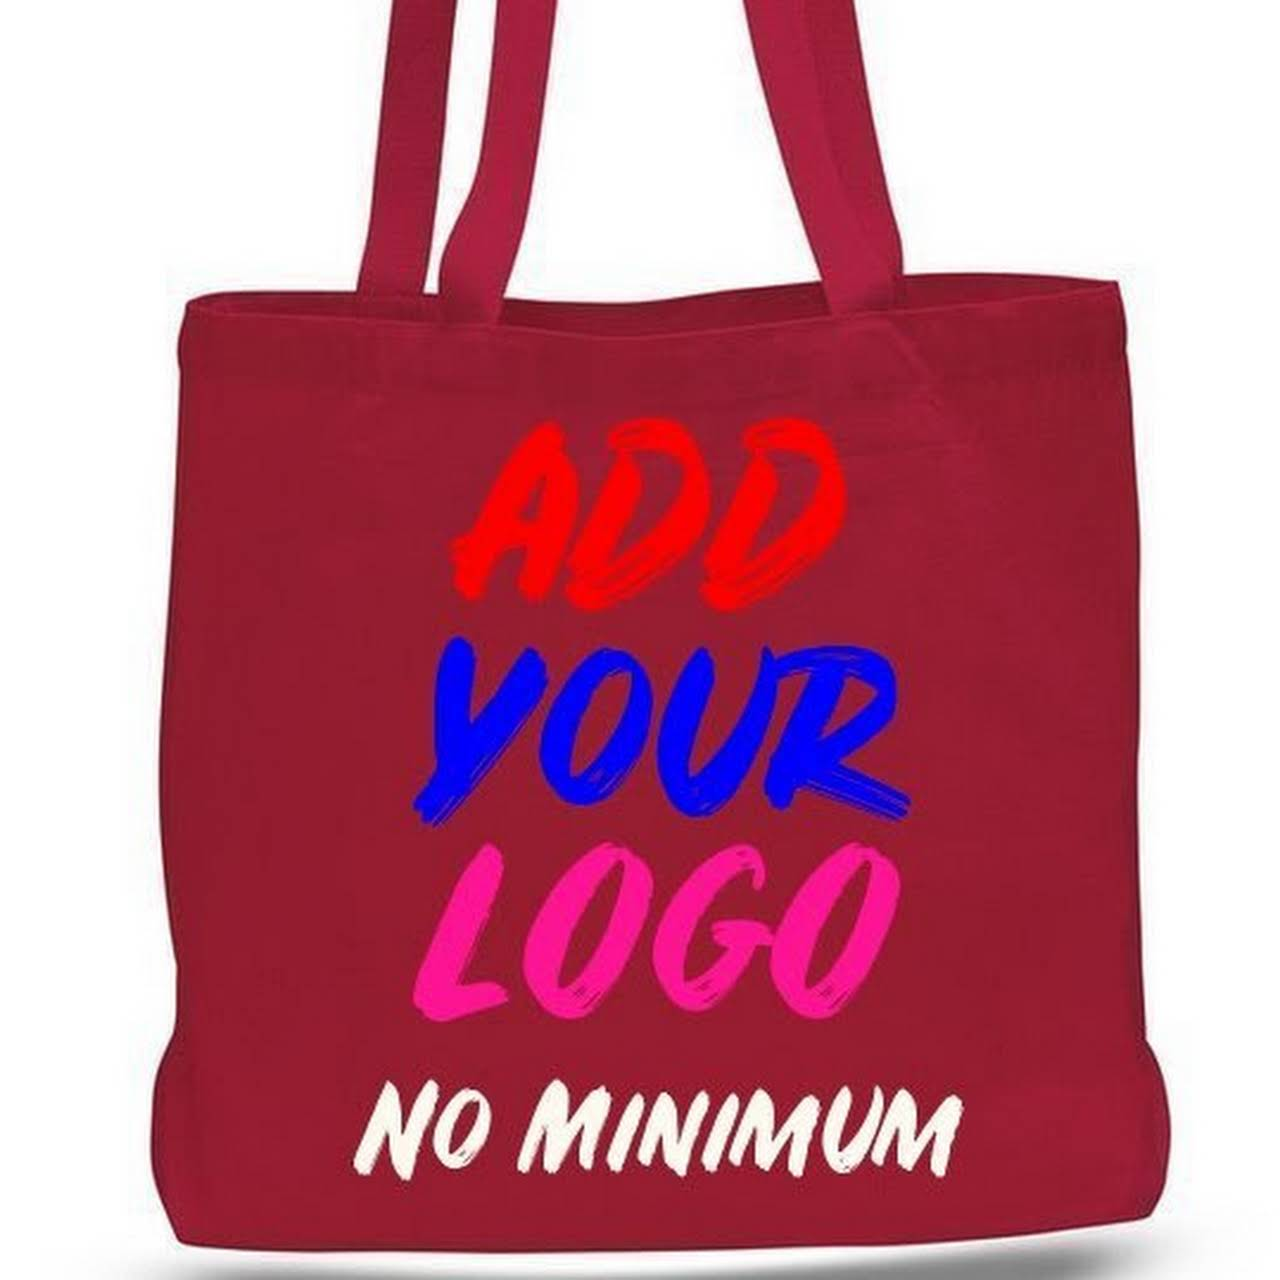 e141df9ed4 Bagandtote - Promotional Products Supplier in Riverside